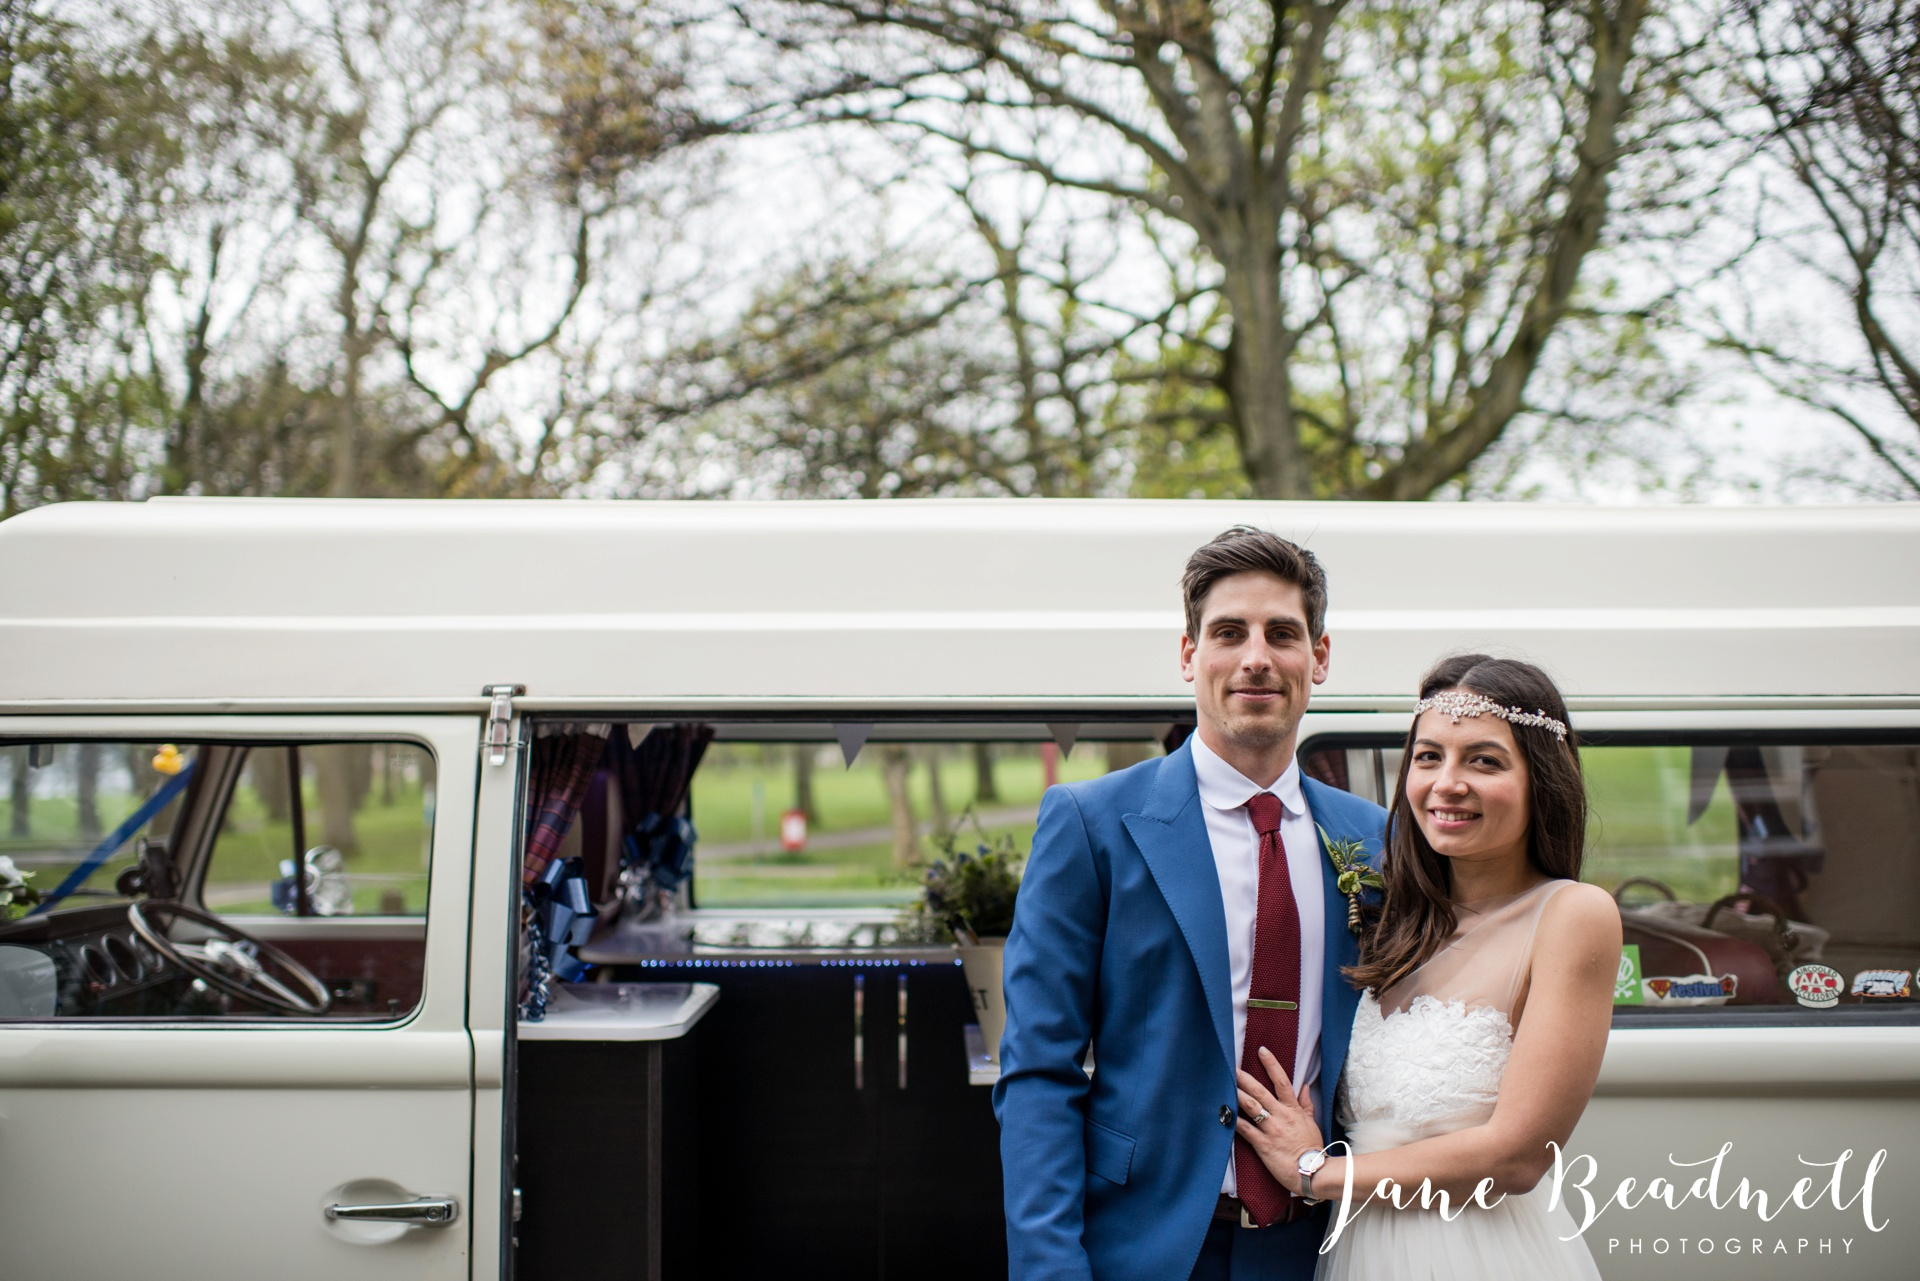 Left Bank Centre Leeds wedding photography by Jane Beadnell photography Yorkshire_0067